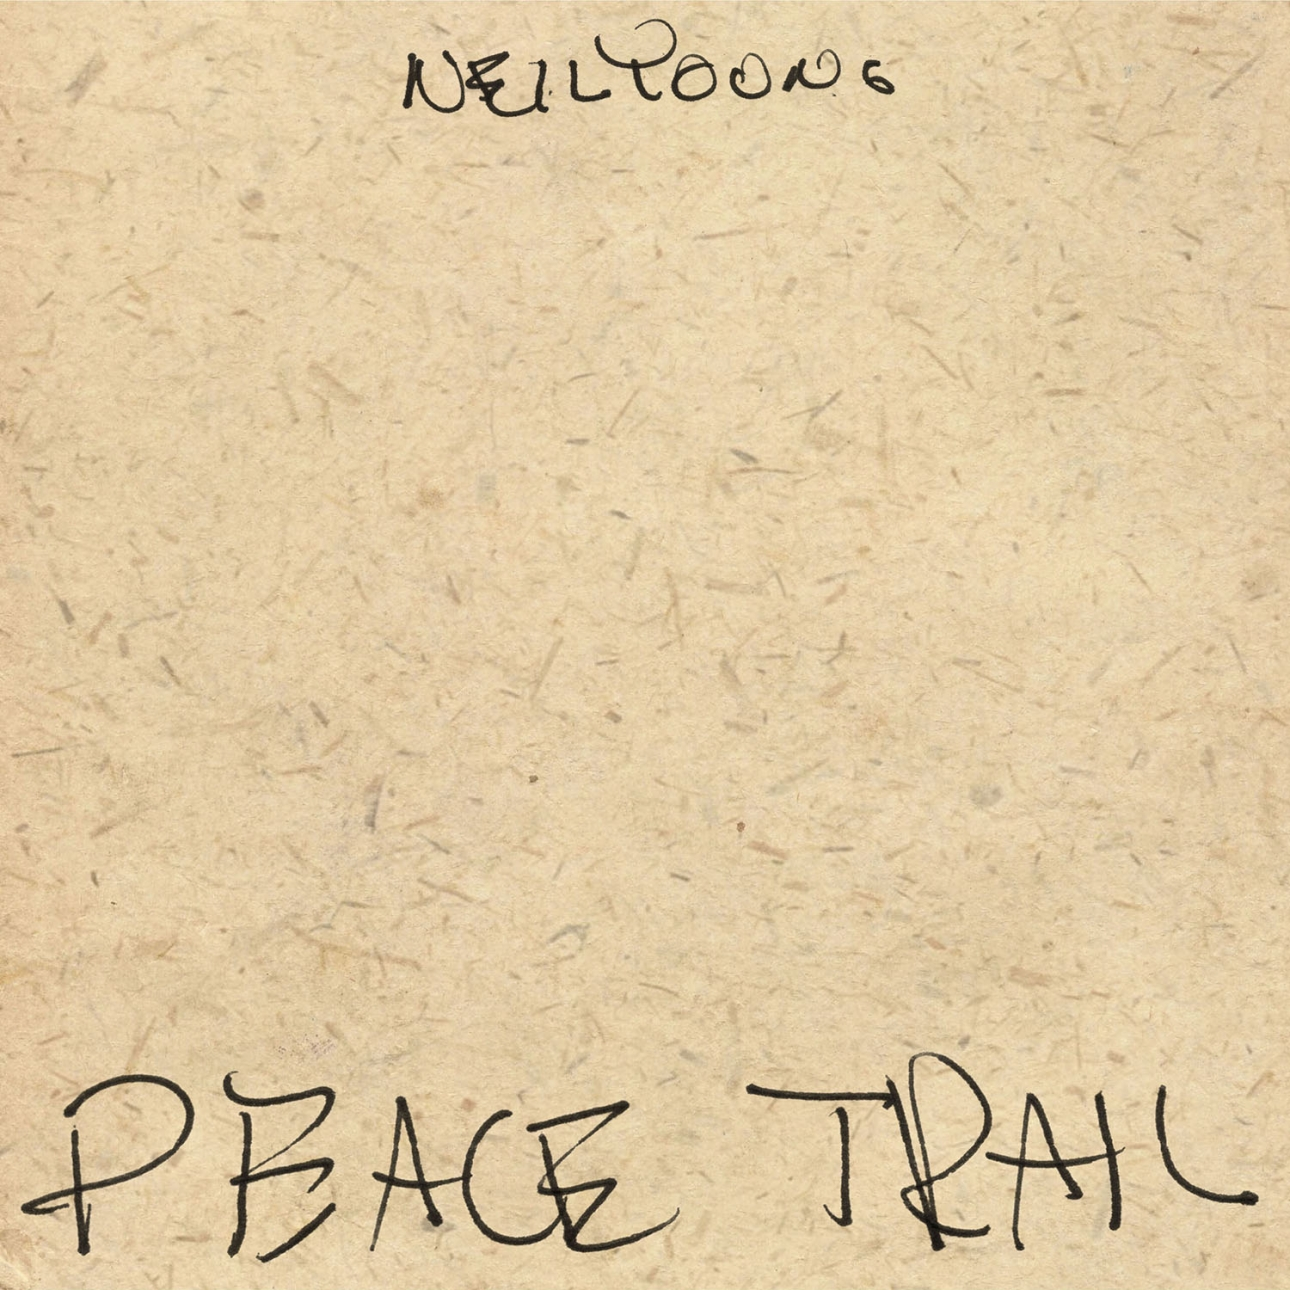 Peace Trail by Neil Young | lAlbum Review